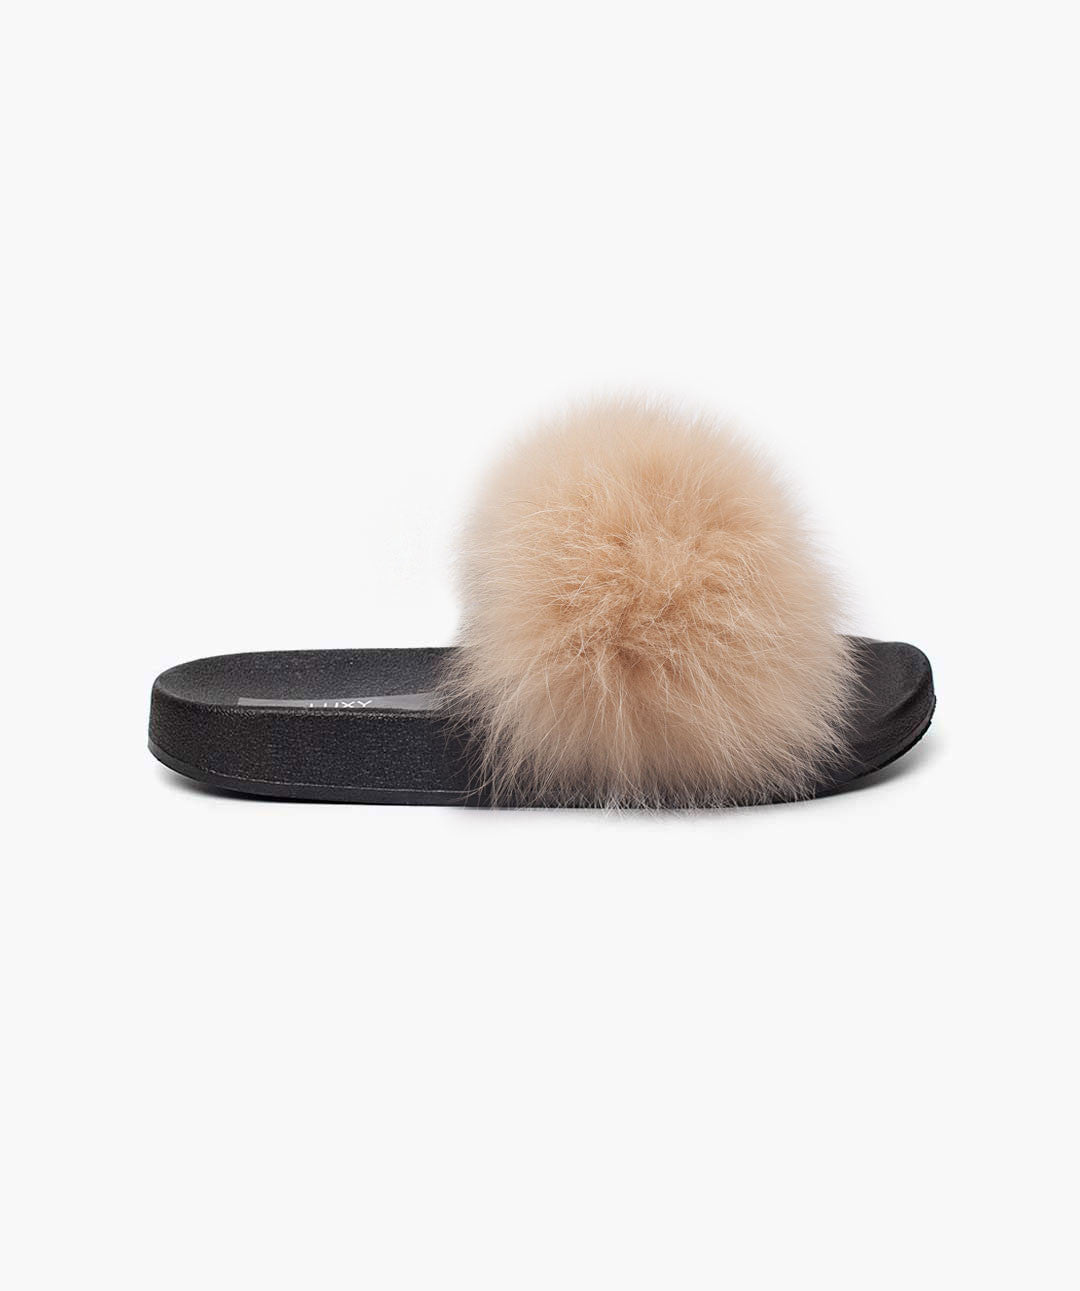 LUXY FOX FUR SLIDERS - APRICOT